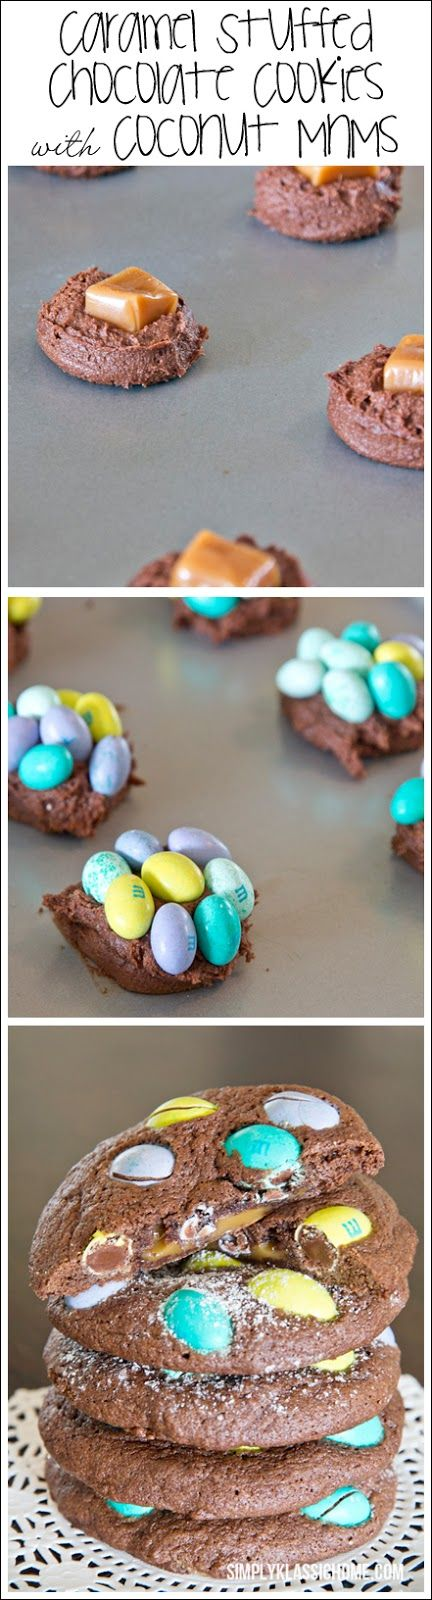 Caramel Stuffed Chocolate Cookies with Coconut MnMs www.simplyklassichome.com